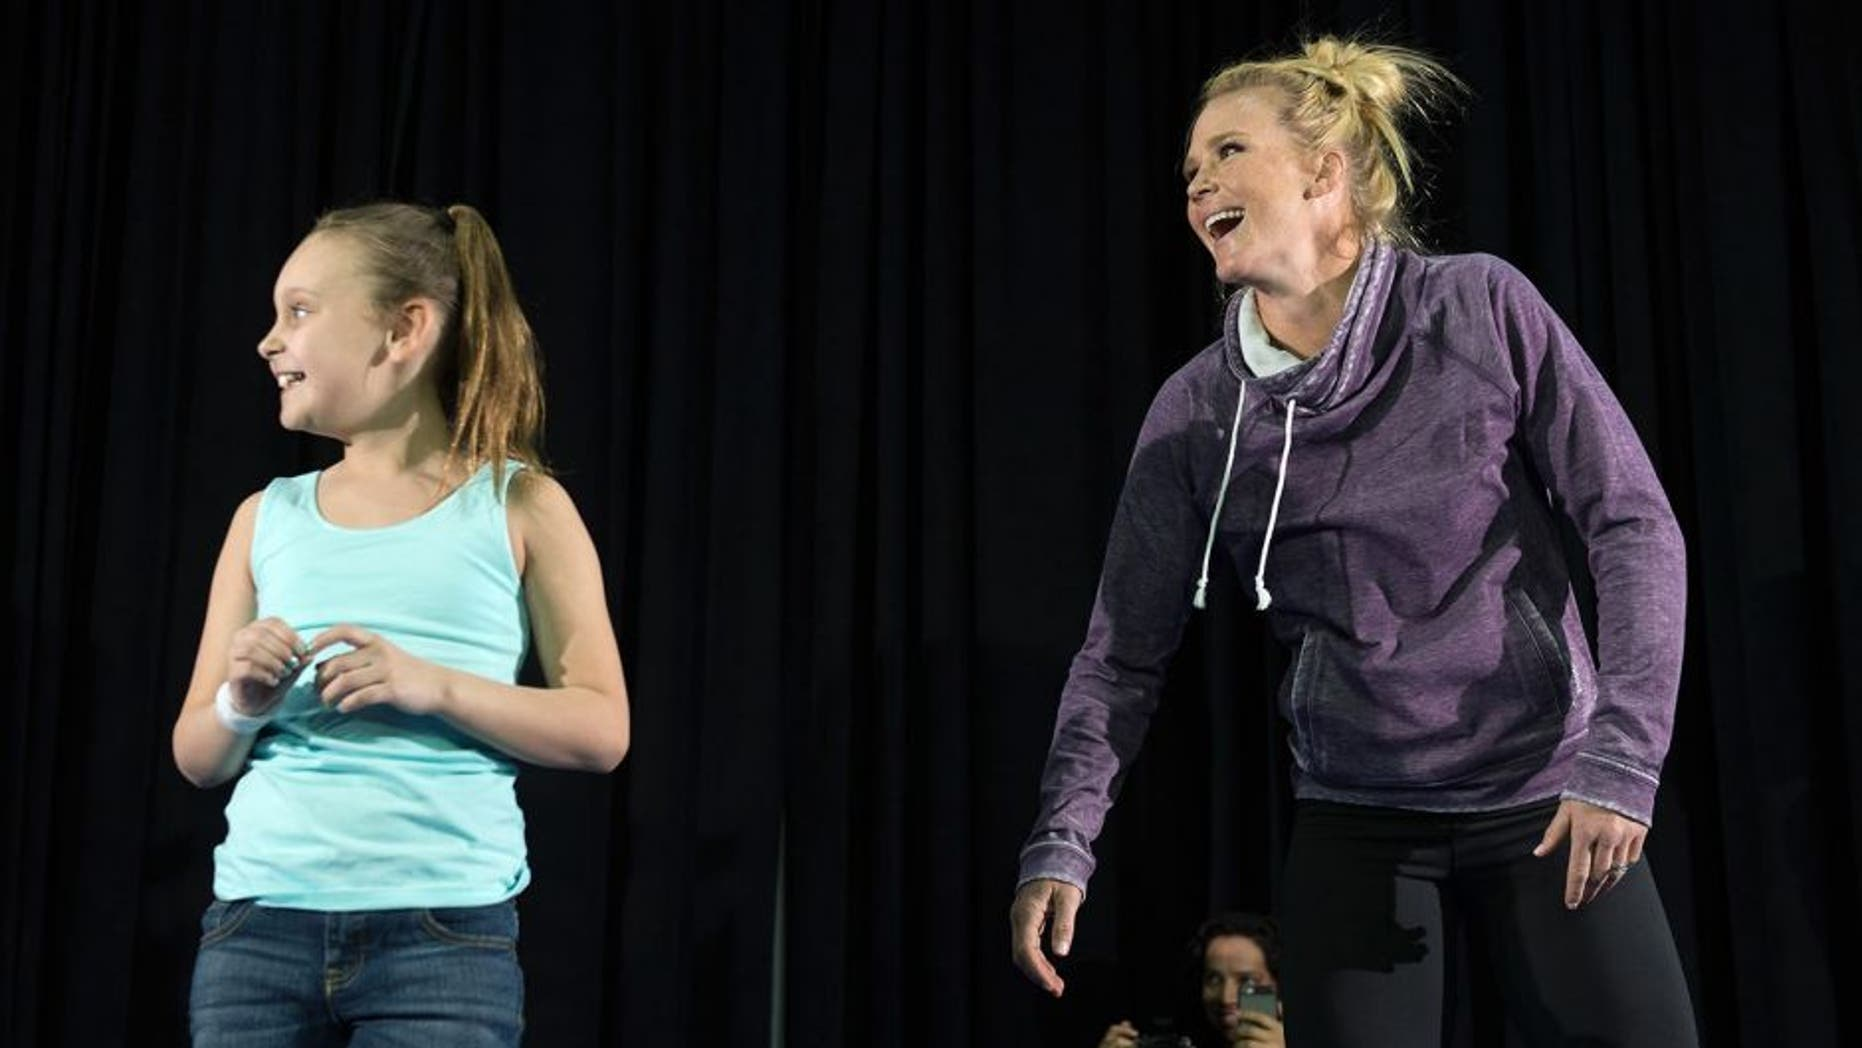 LAS VEGAS, NV - MARCH 2: UFC bantamweight champion Holly Holm brings a fan on stage and holds an open training session for fans and media at the Jabbawockeez Theater in the MGM Grand Hotel/Casino on March 2, 2016 in Las Vegas, Nevada. (Photo by Brandon Magnus/Zuffa LLC/Zuffa LLC via Getty Images)